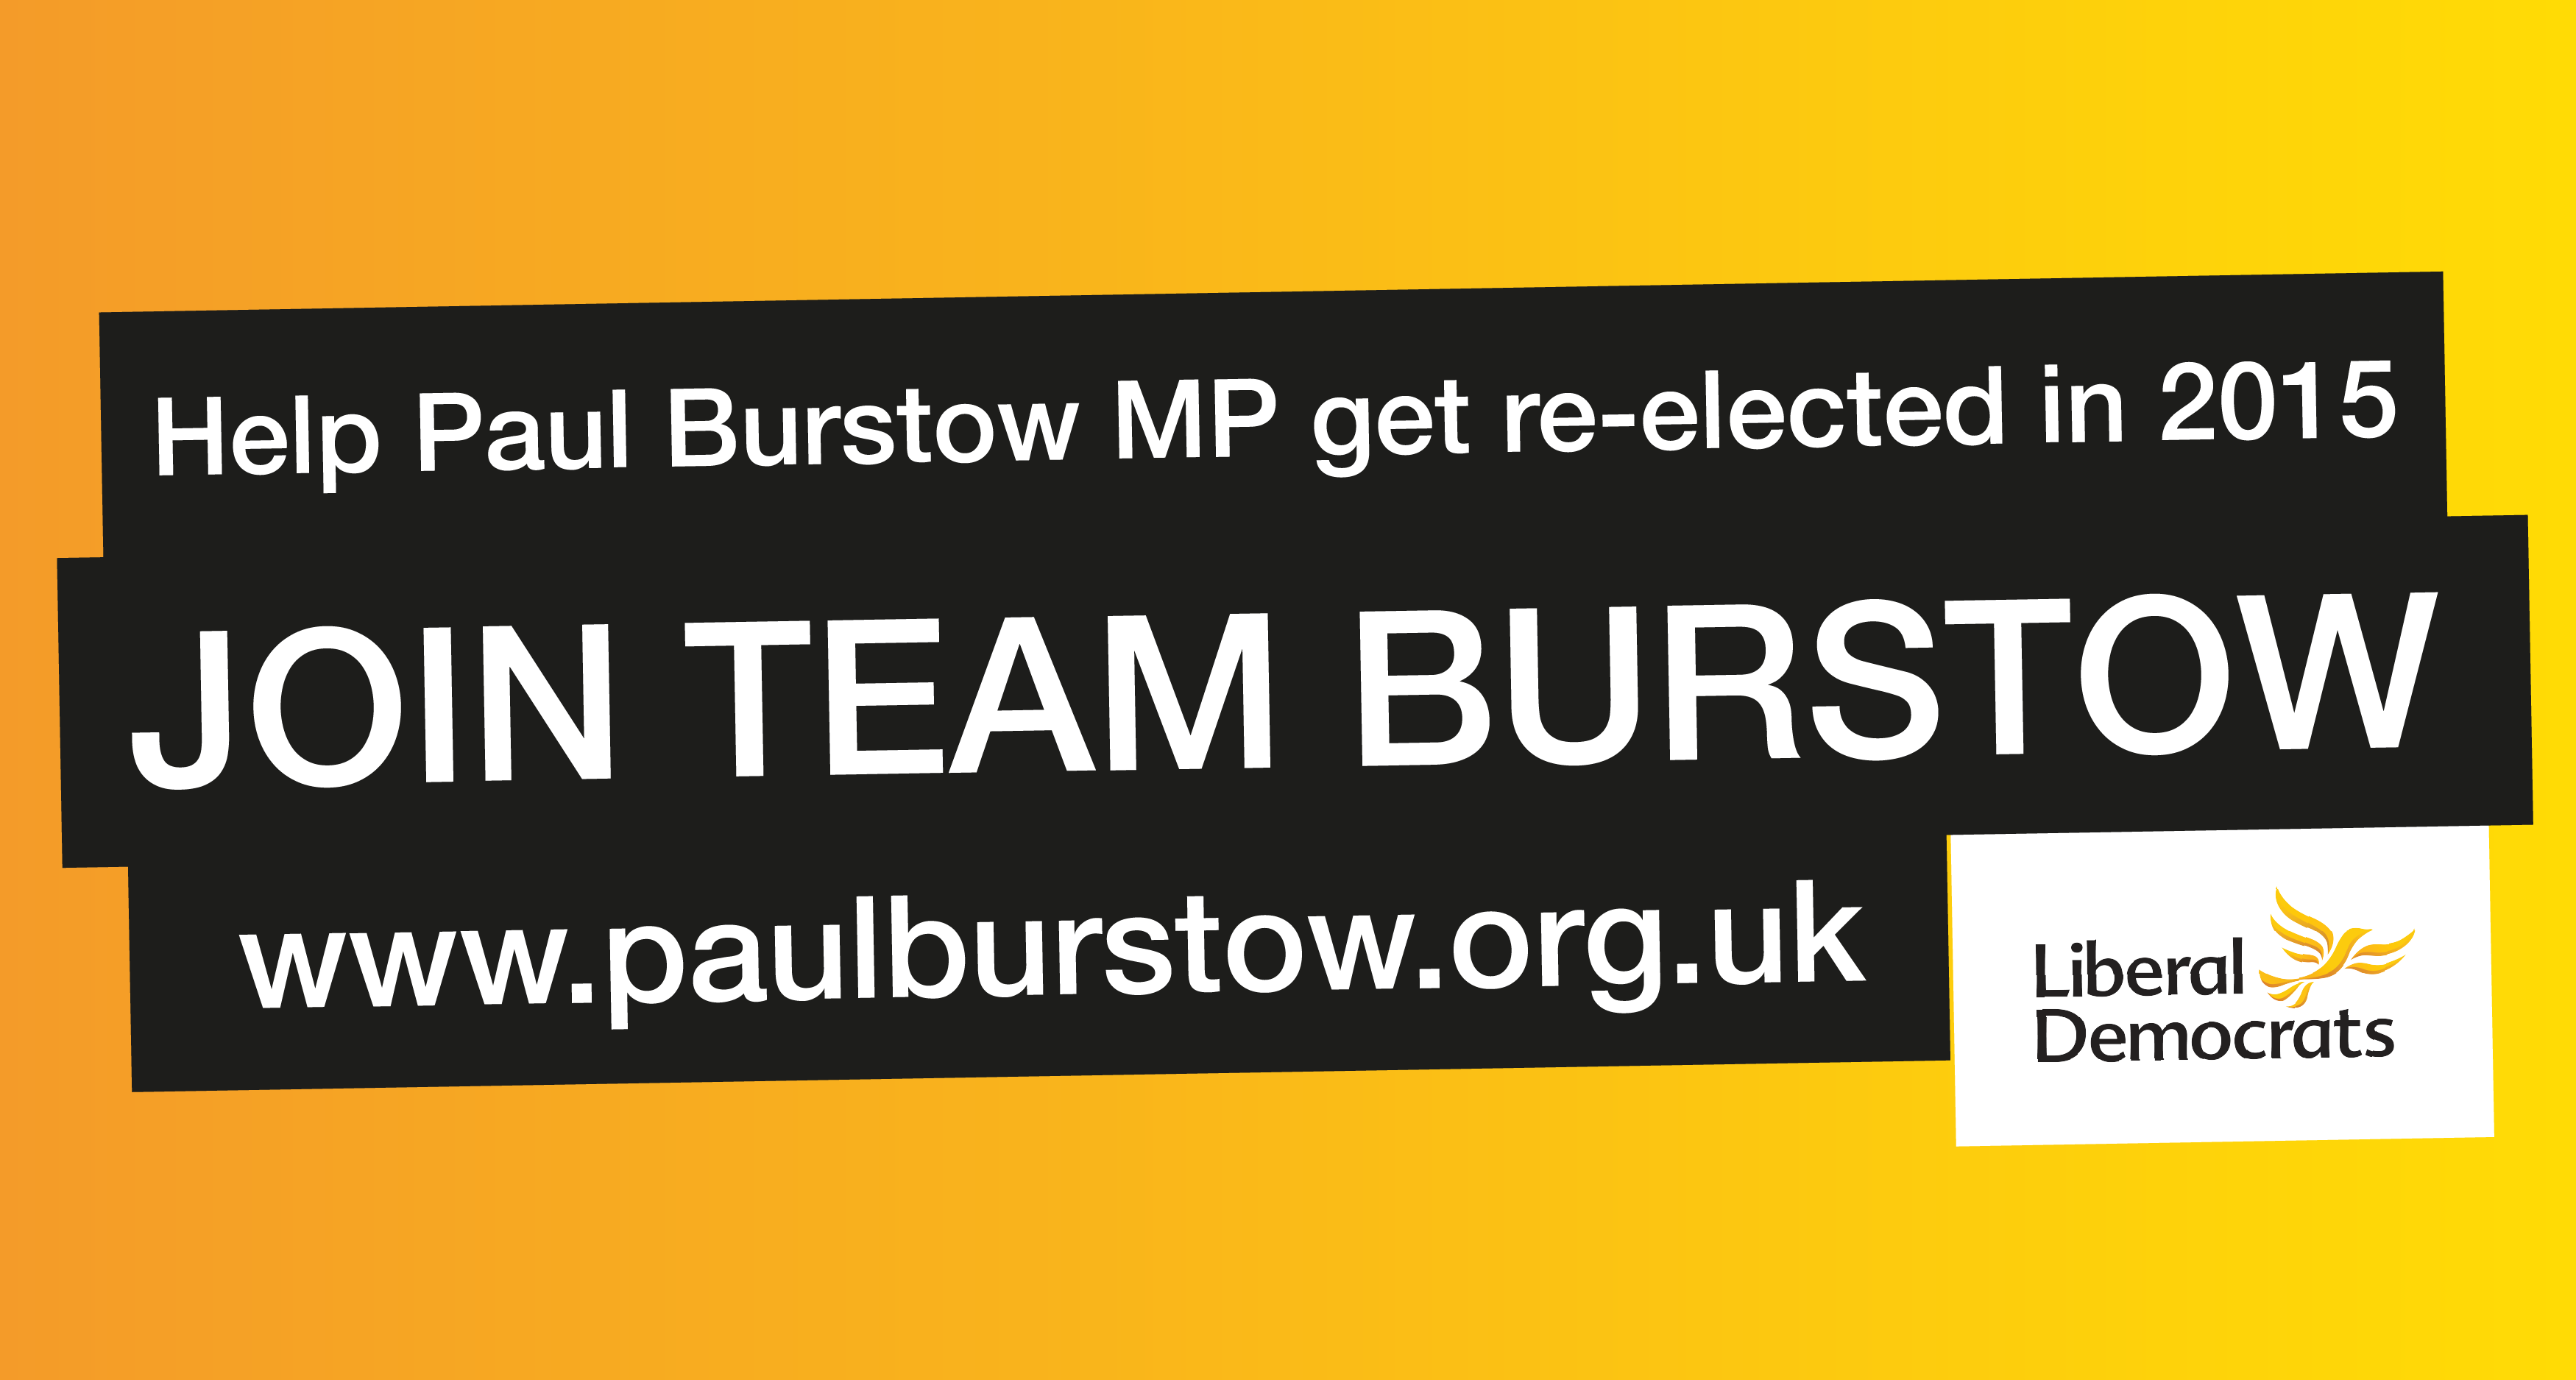 Join Team Burstow